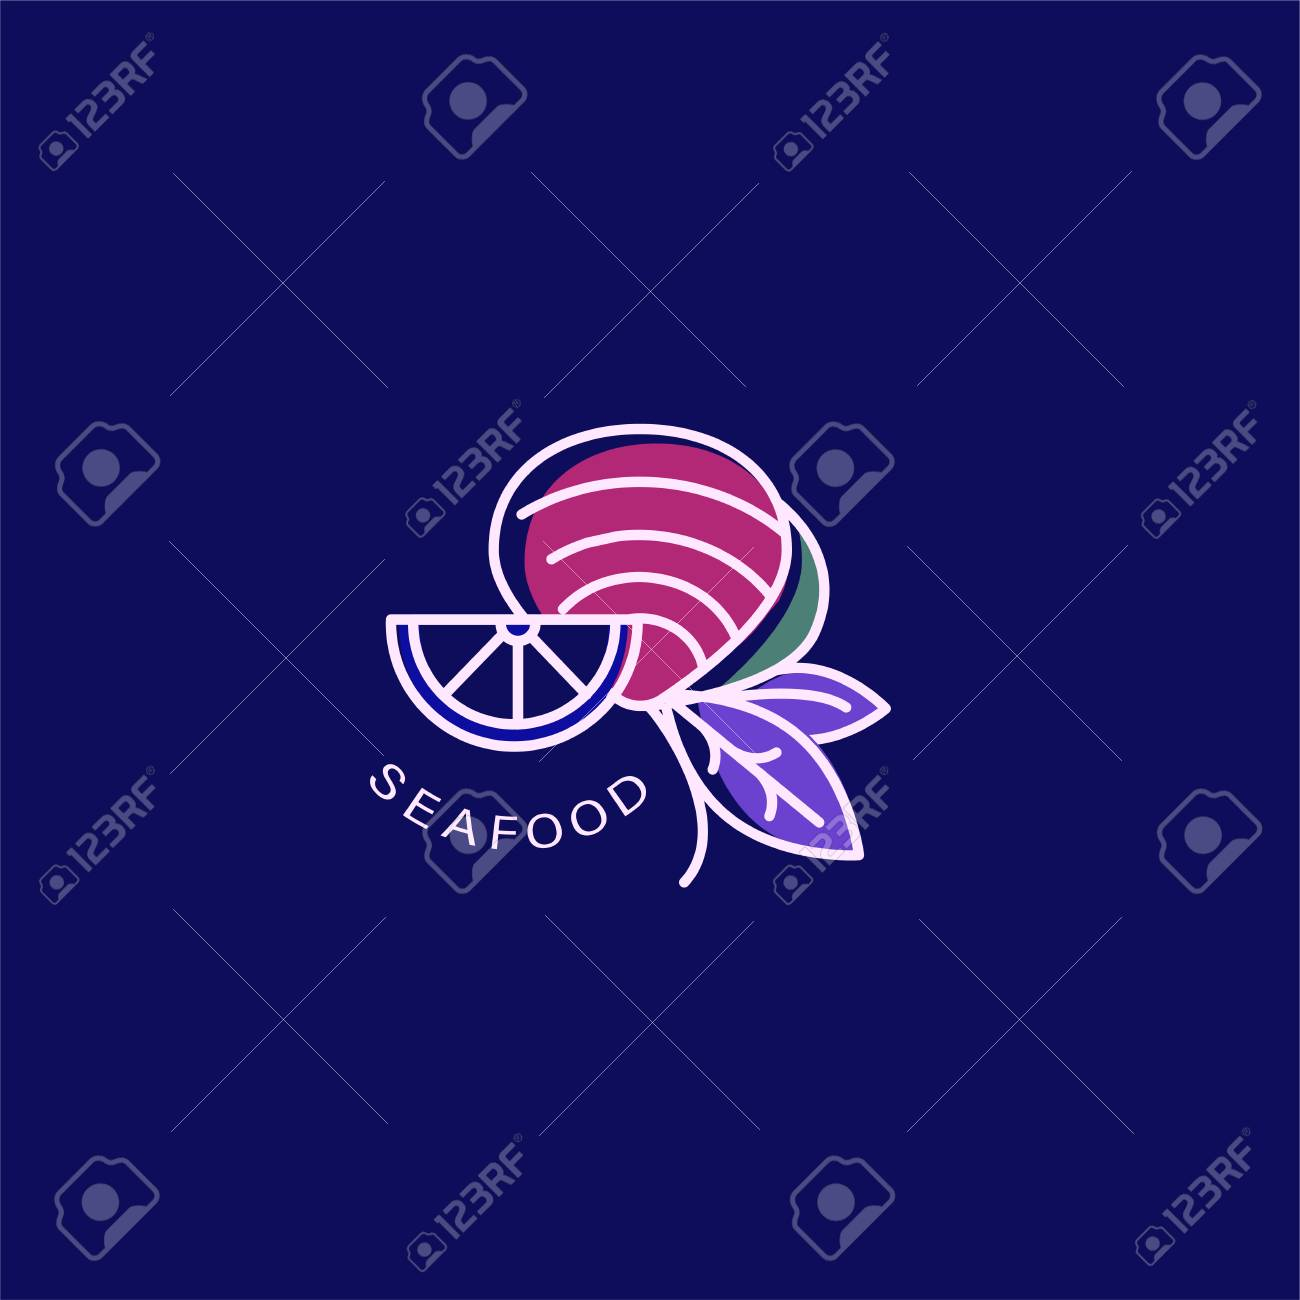 Vector Icon And Logo For Seafood Restaurant Or Cafe Editable